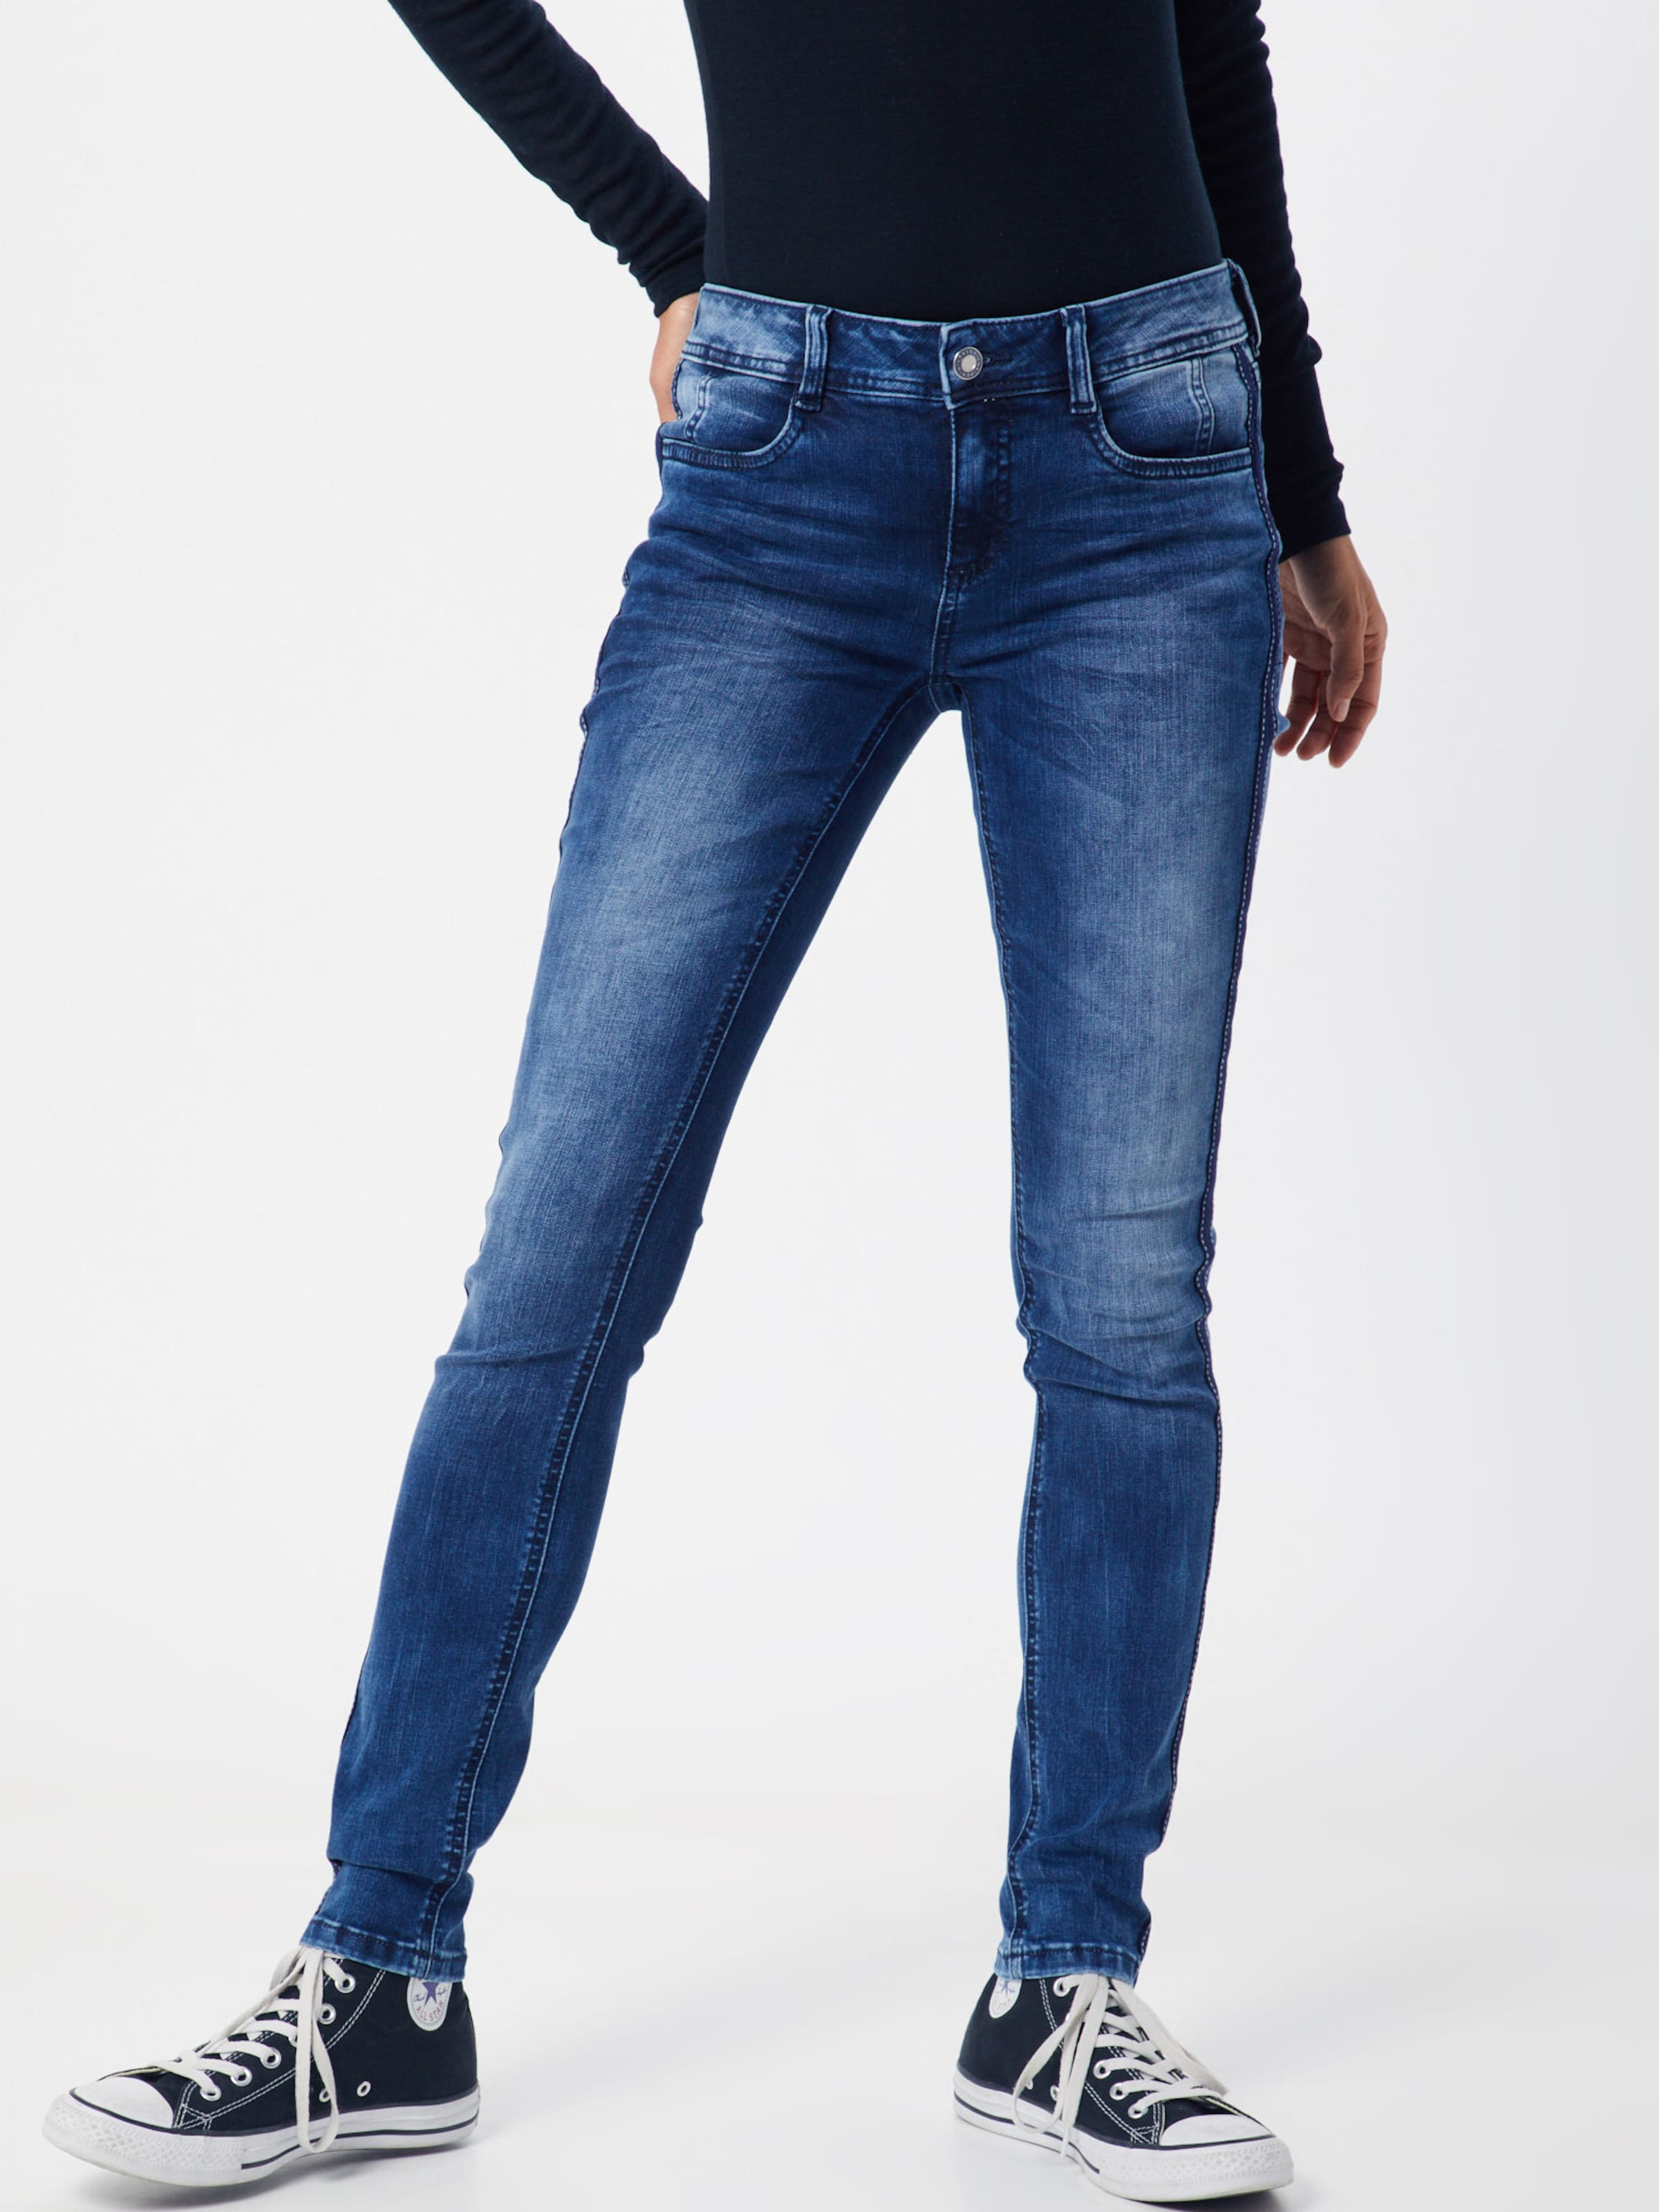 Jean Street Denim En York One 'qr Blue' Bleu OXZPiuk